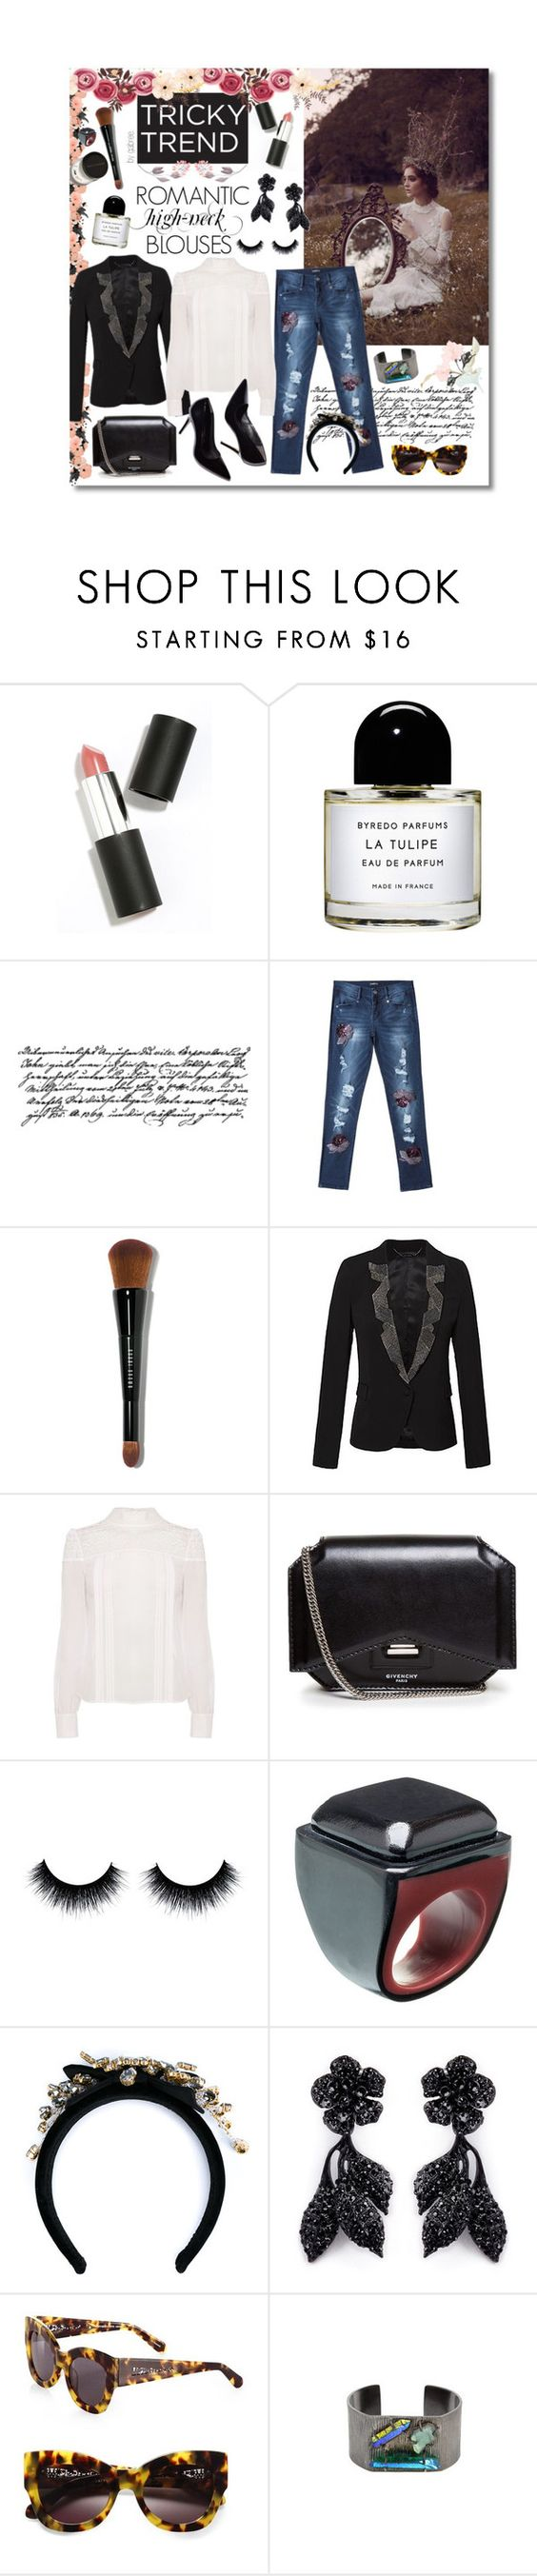 """Romantic High-Neck Blouses"" by gabree ❤ liked on Polyvore featuring Mode, Sigma Beauty, Byredo, Bebe, Bobbi Brown Cosmetics, Karen Millen, Givenchy, Marni, Dolce&Gabbana und Valentino"